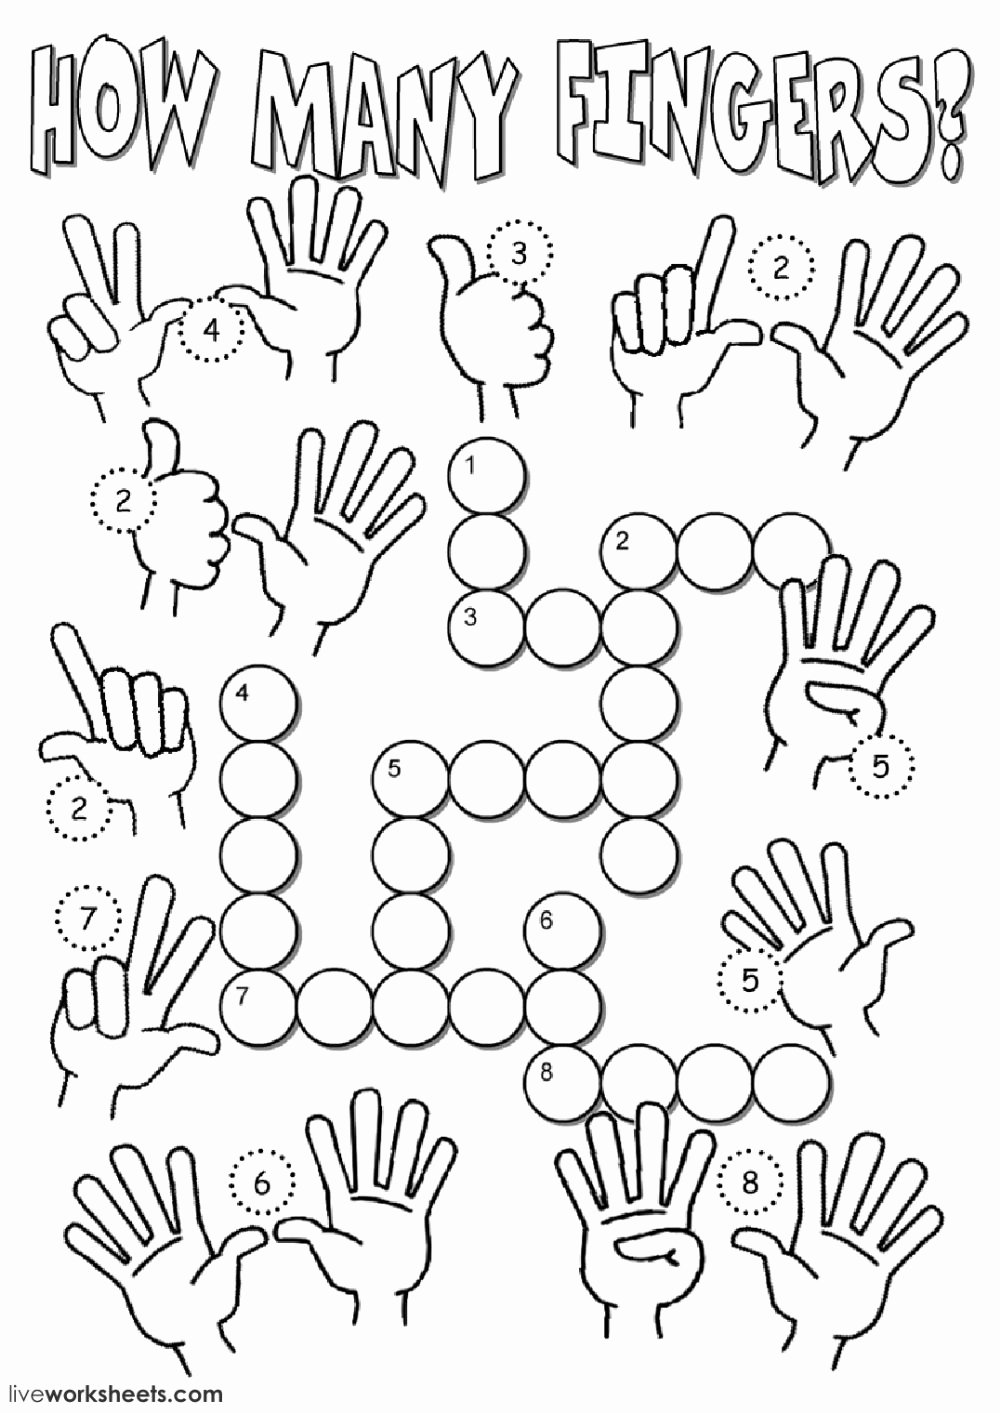 Interactive Worksheets for Preschoolers Best Of Many Fingers Interactive Worksheet Dhivehi Worksheets for